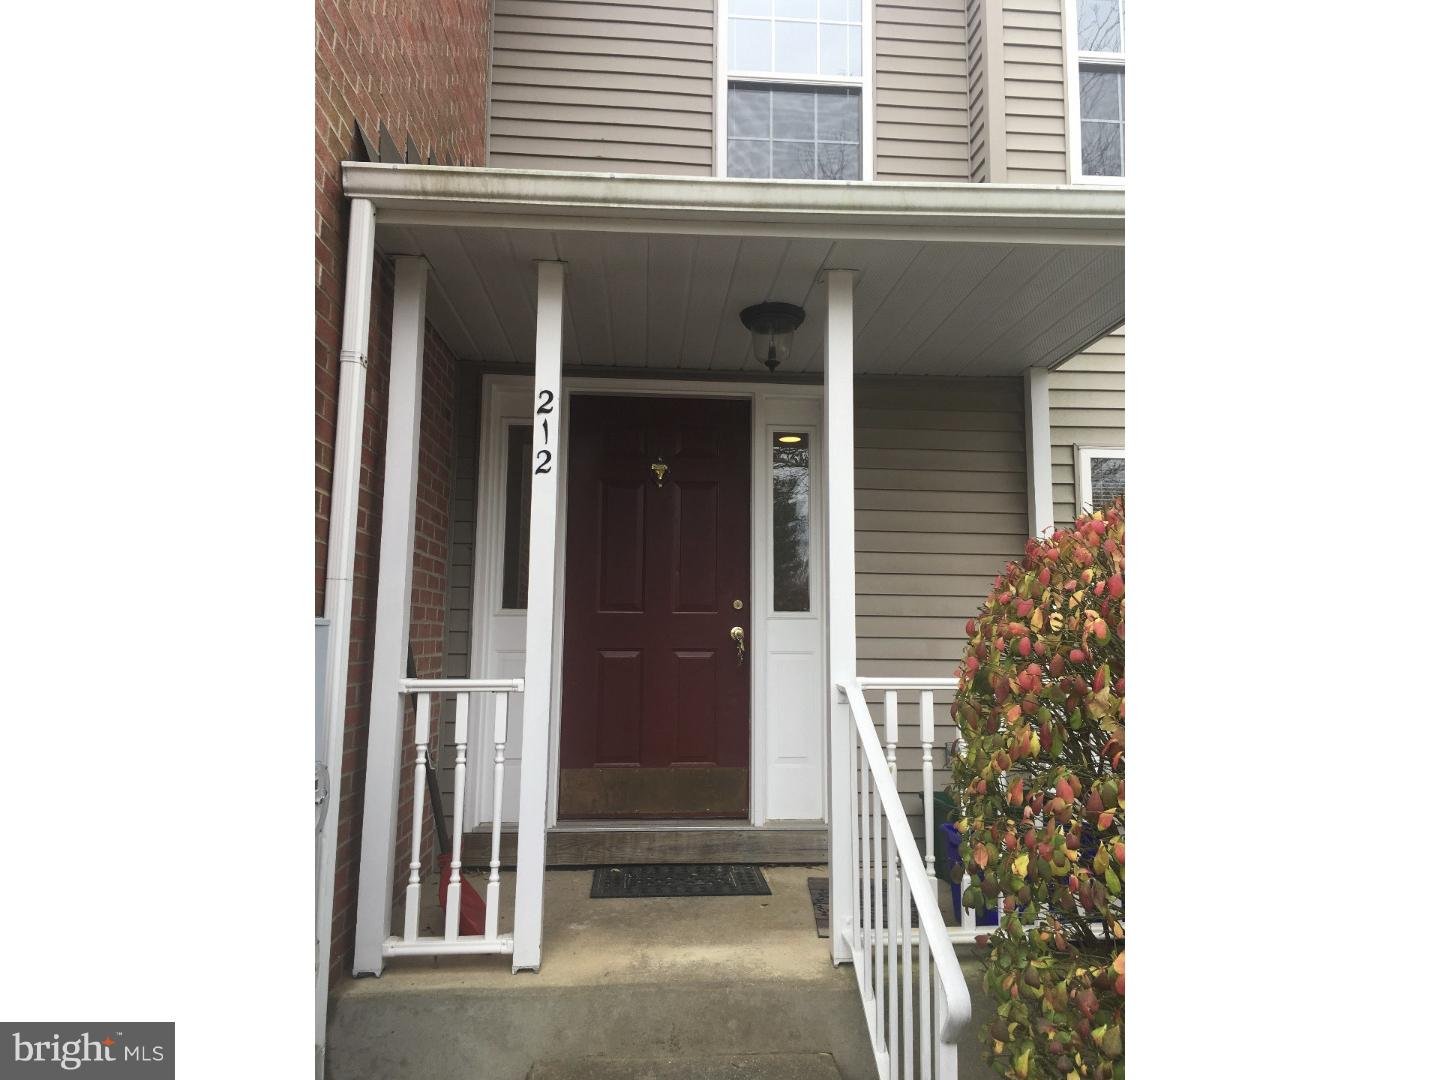 Property for Rent at 212 VICTORIA CT #161 Doylestown, Pennsylvania 18901 United States